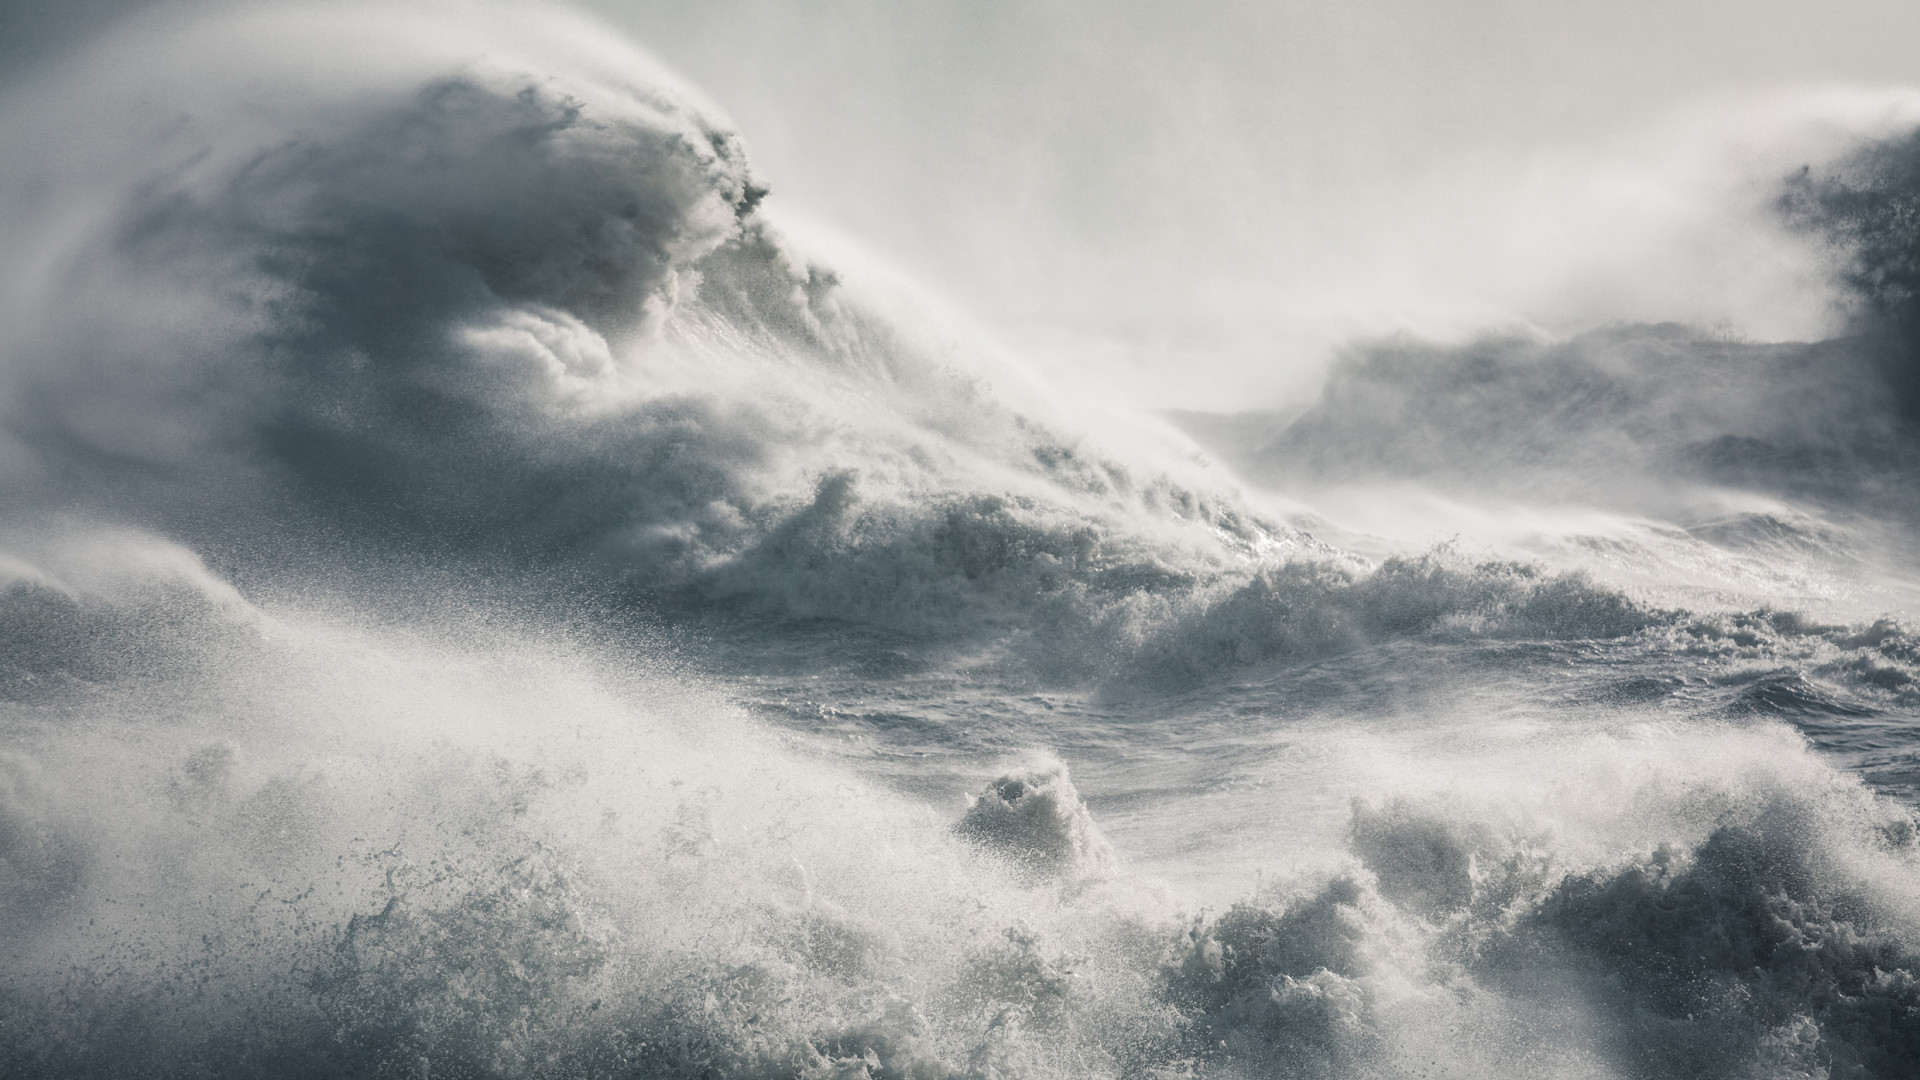 Extreme seas during Storm Imogen in UK